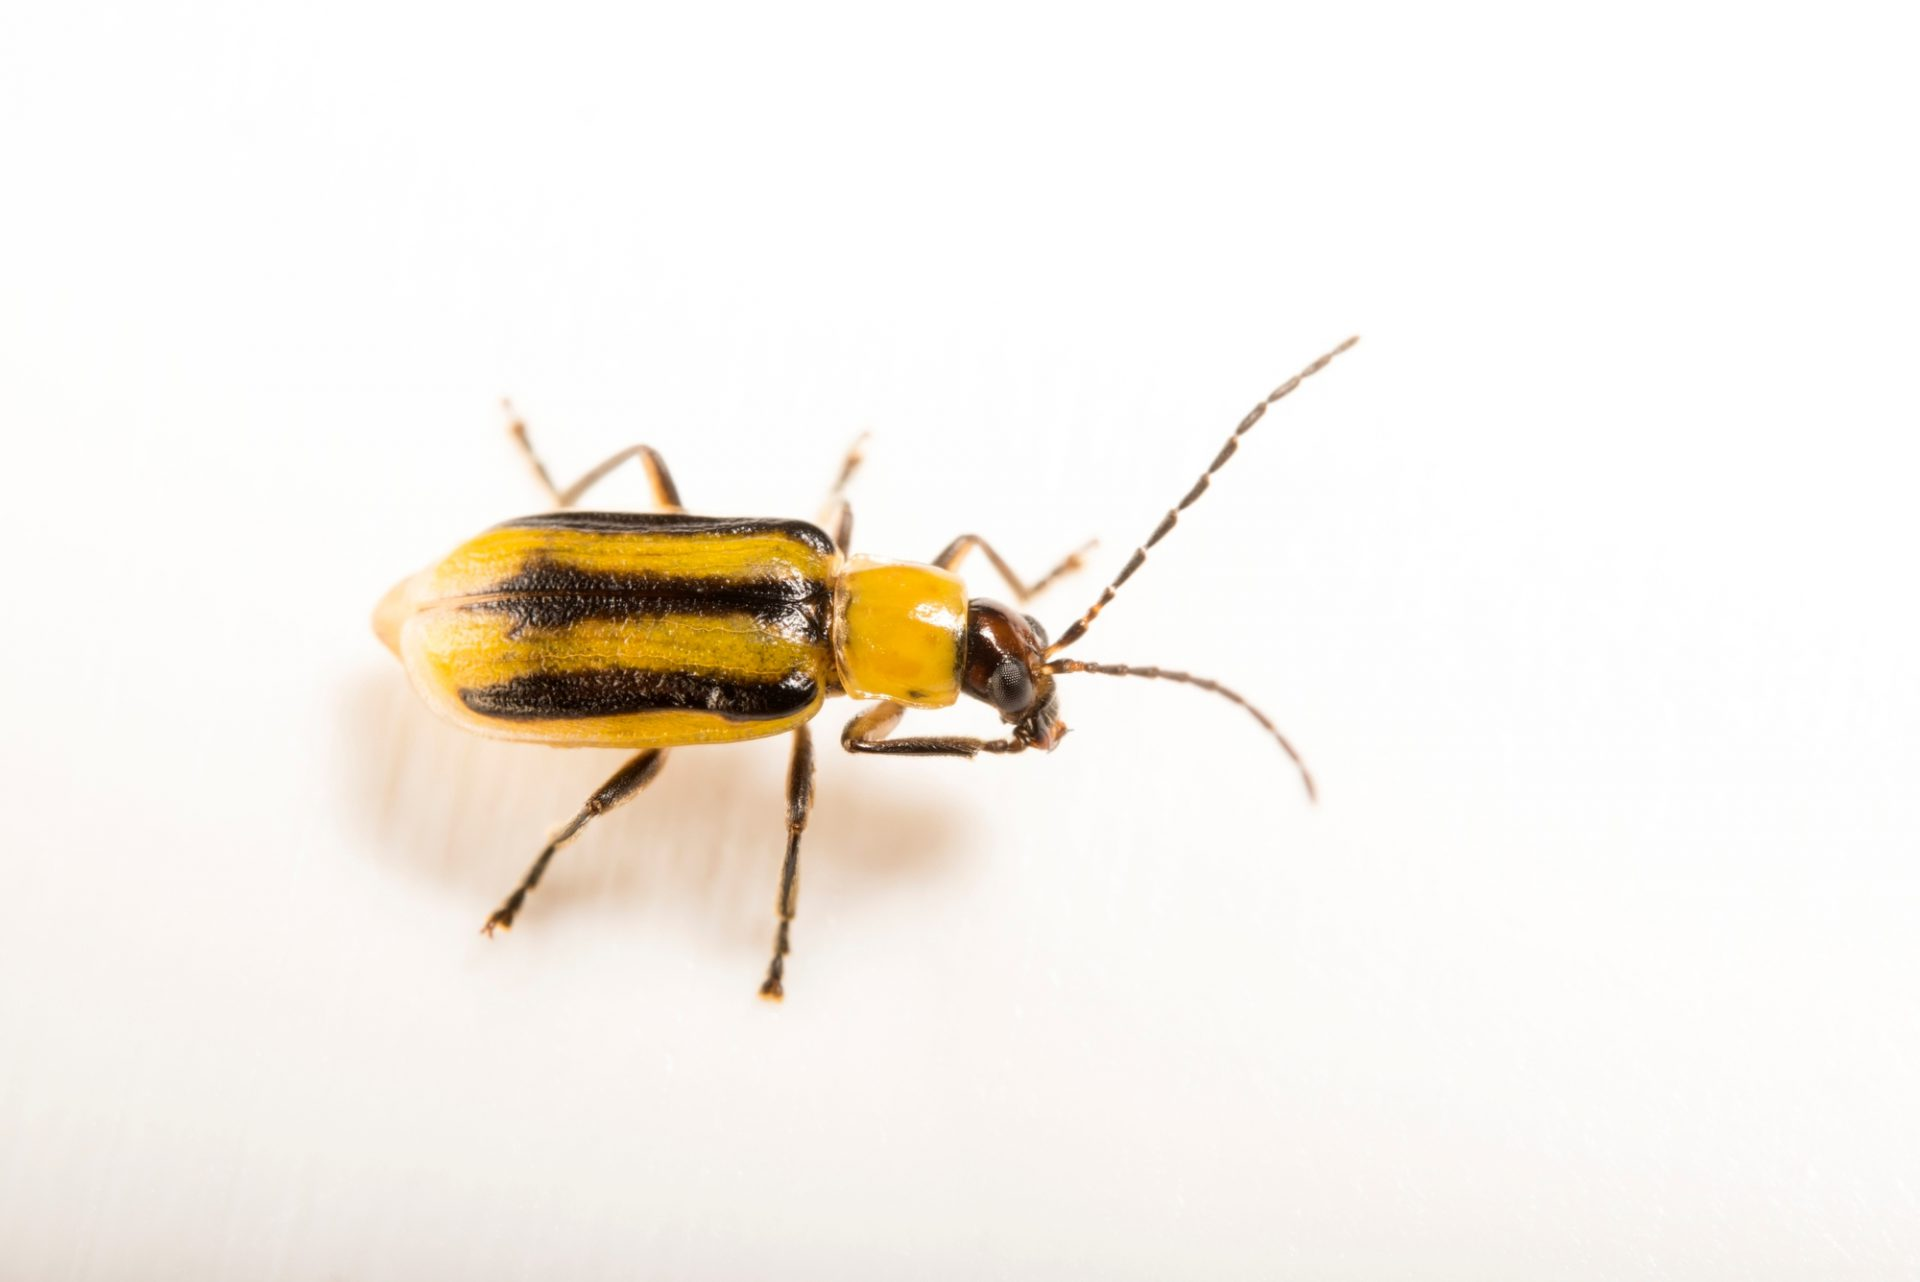 Photo: Western corn rootworm beetle (Diabrotica virgifera virgifera) at the University of Florida at Gainesville.